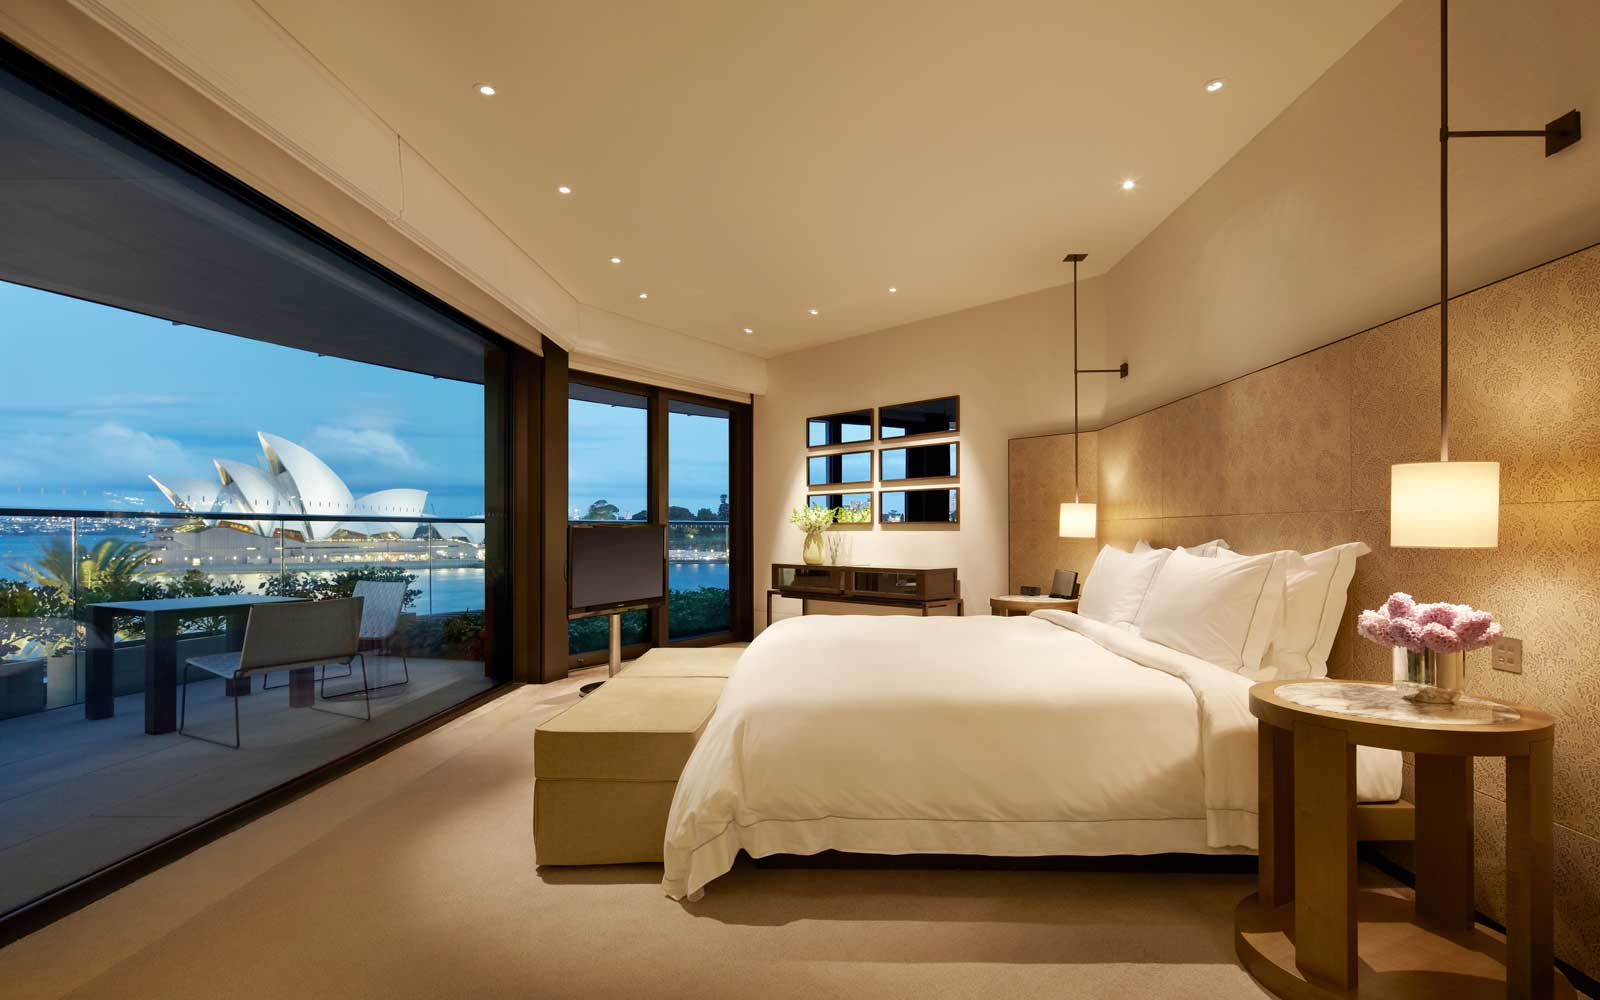 A room at the Park Hyatt Sydney hotel